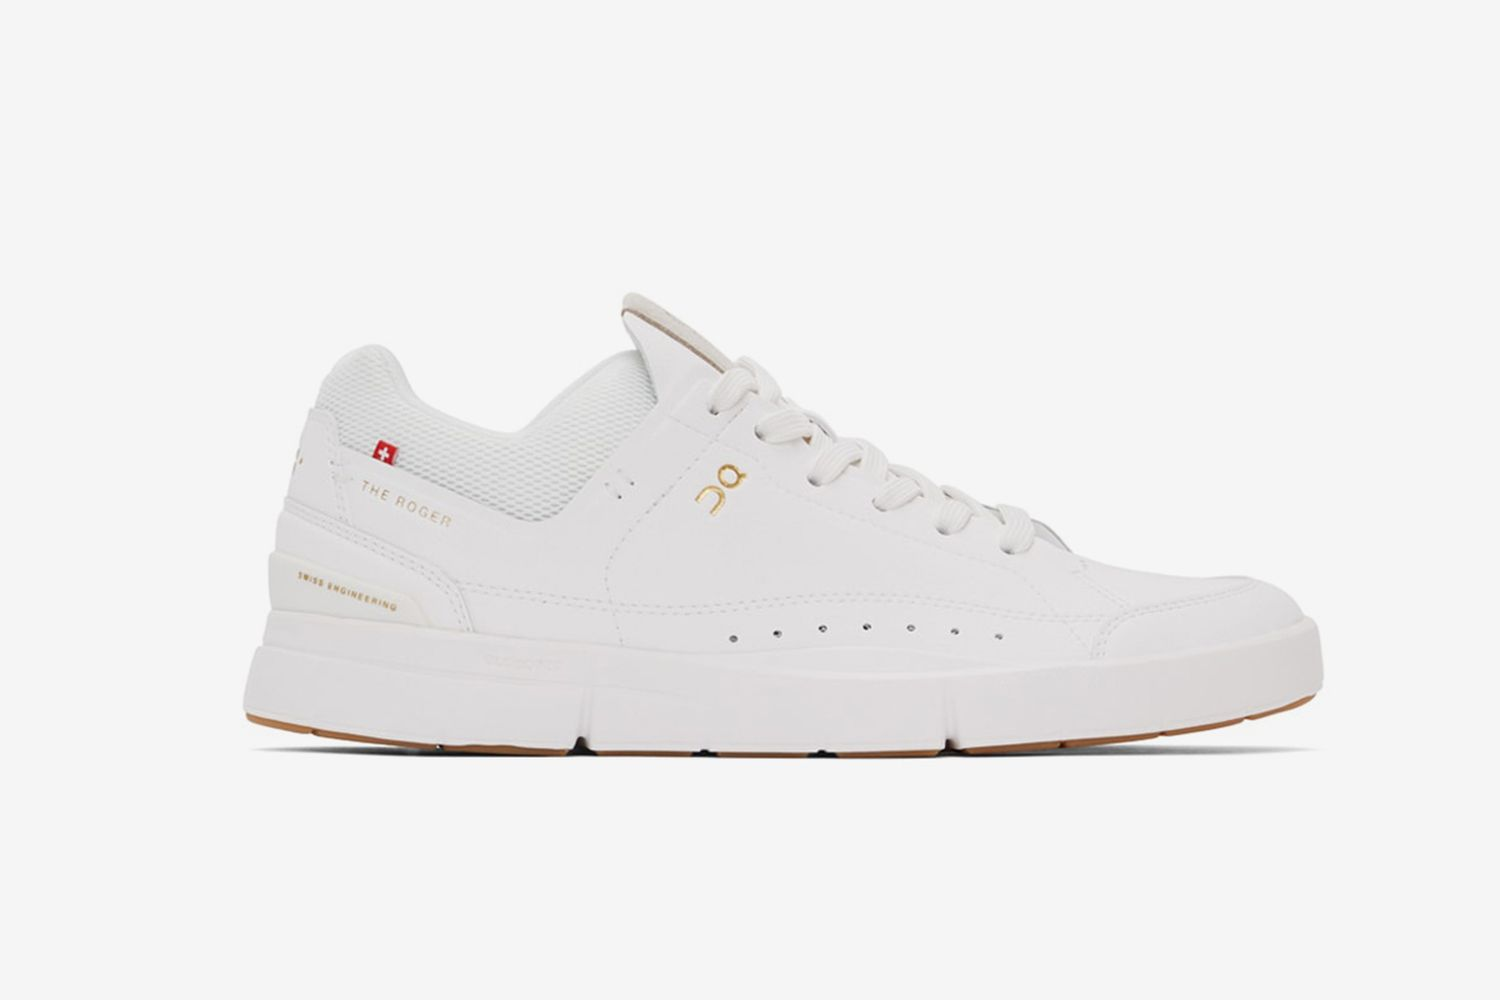 The Roger Clubhouse Sneakers